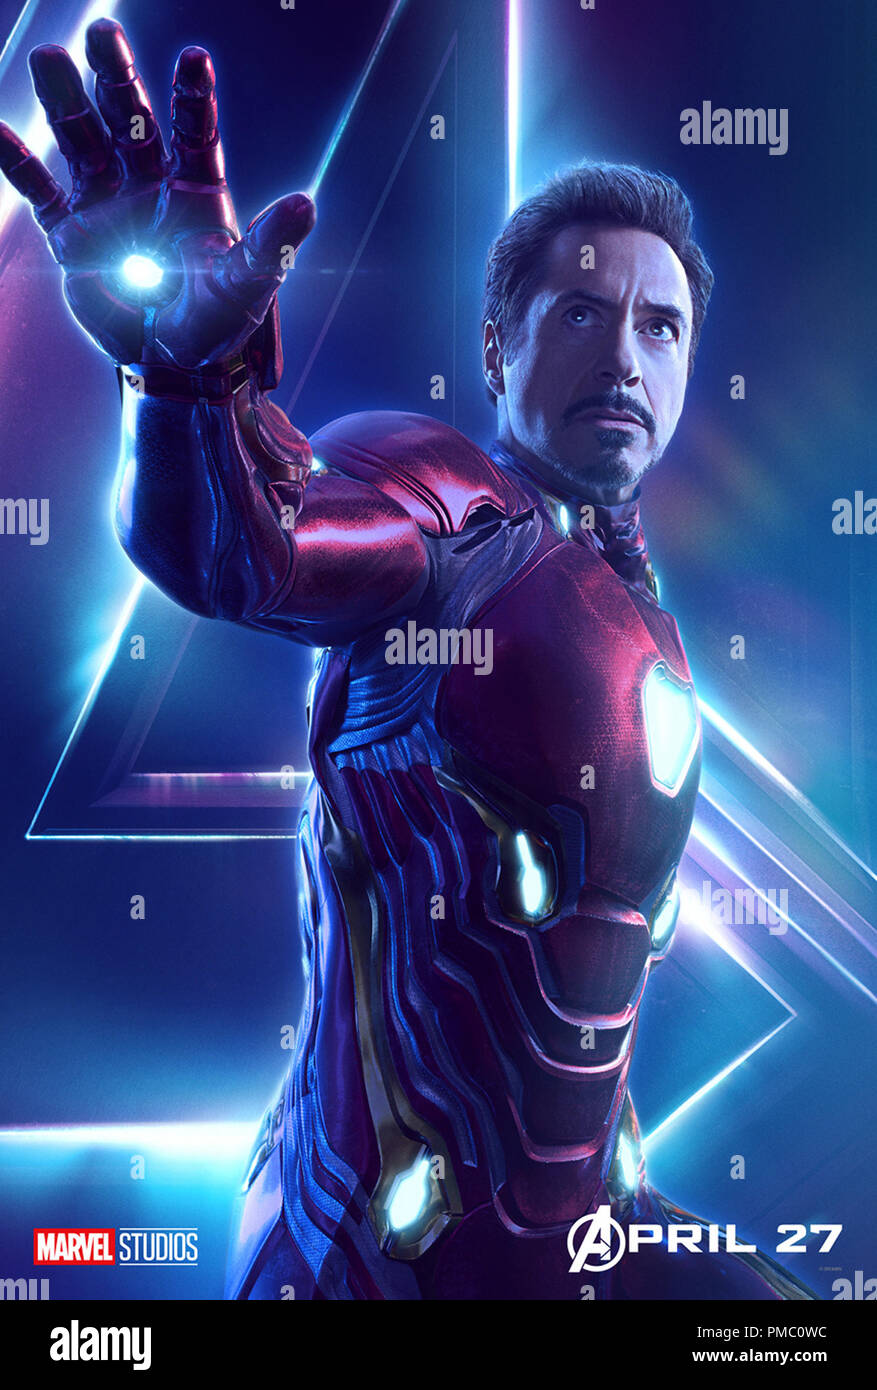 Avengers Infinity War Poster High Resolution Stock Photography And Images Alamy